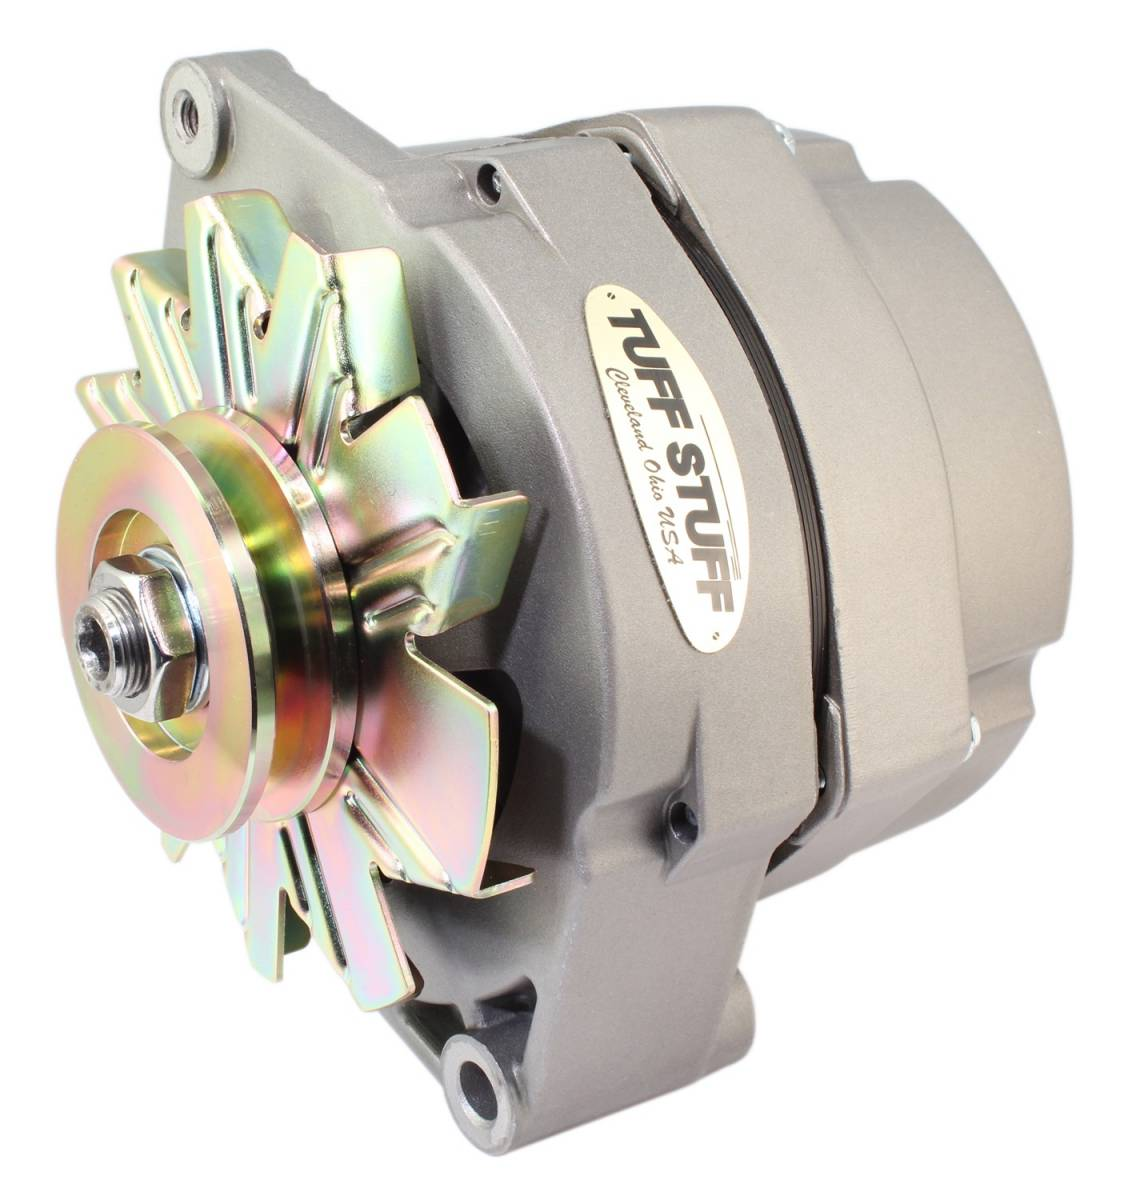 Tuff Stuff Performance - Alternator 80 AMP OEM Wire V Groove Pulley External Regulator Factory Cast PLUS+ Must Be Used With An External Solid State Voltage Regulator 7102